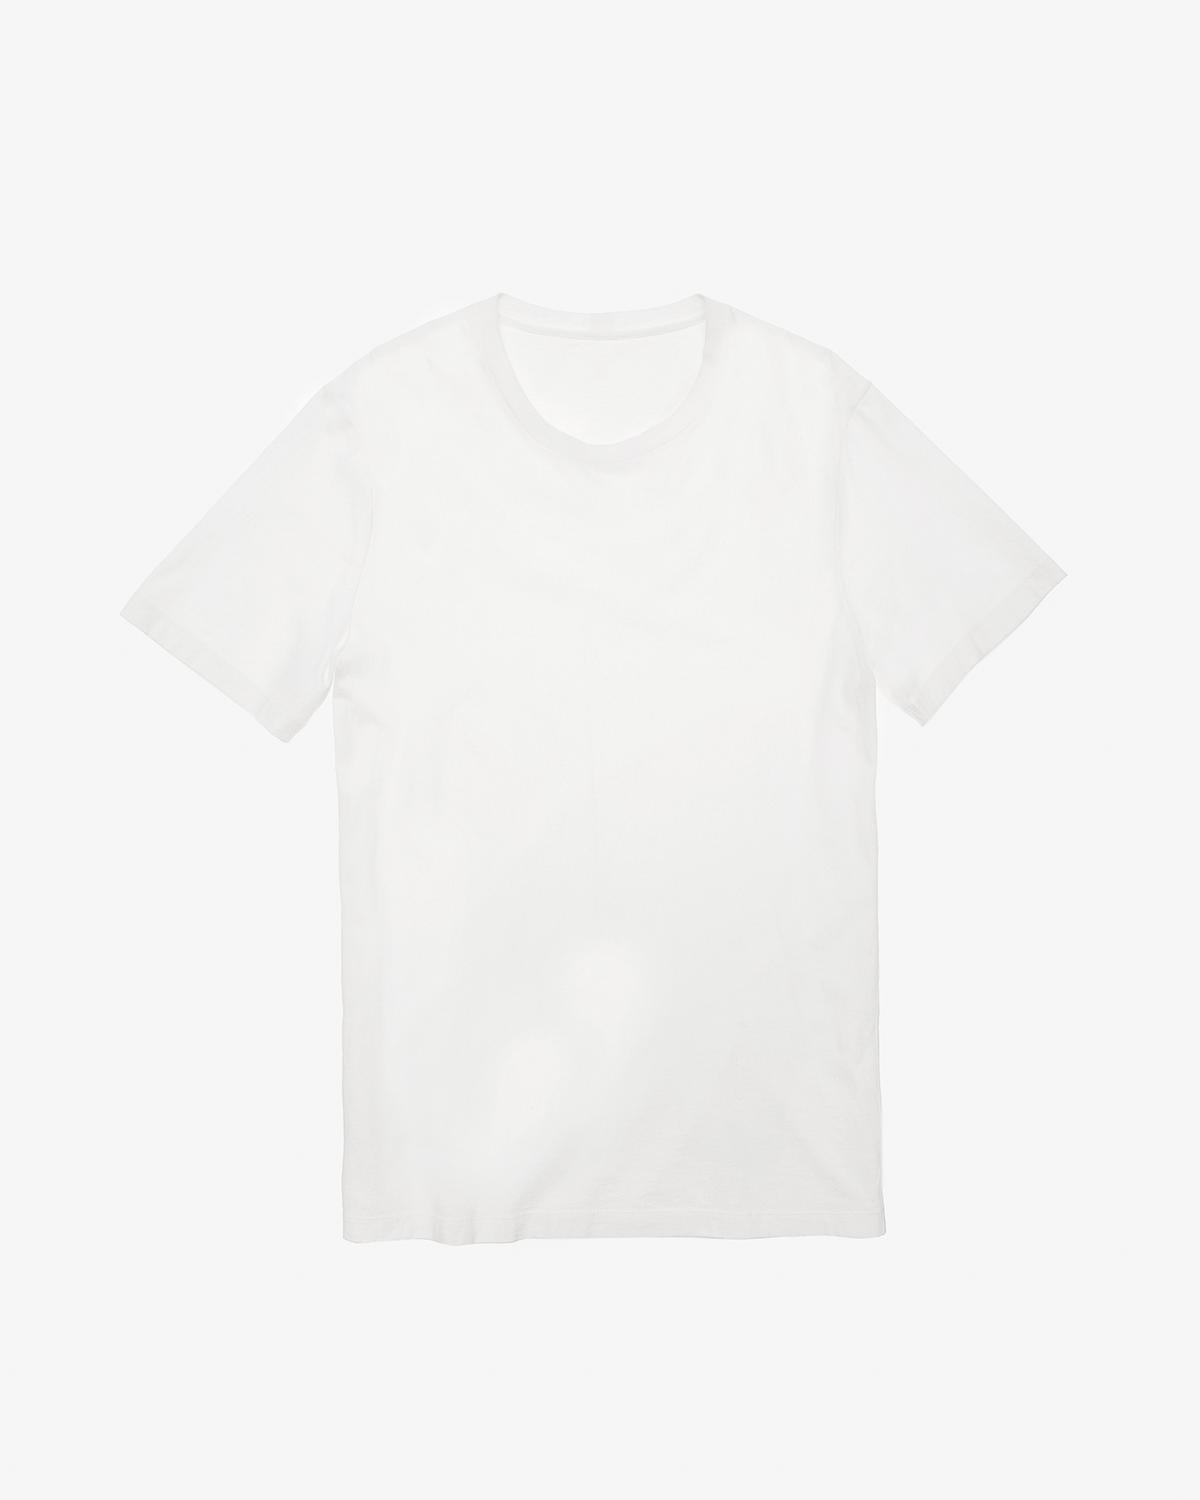 Aviator Short Sleeve T-Shirt